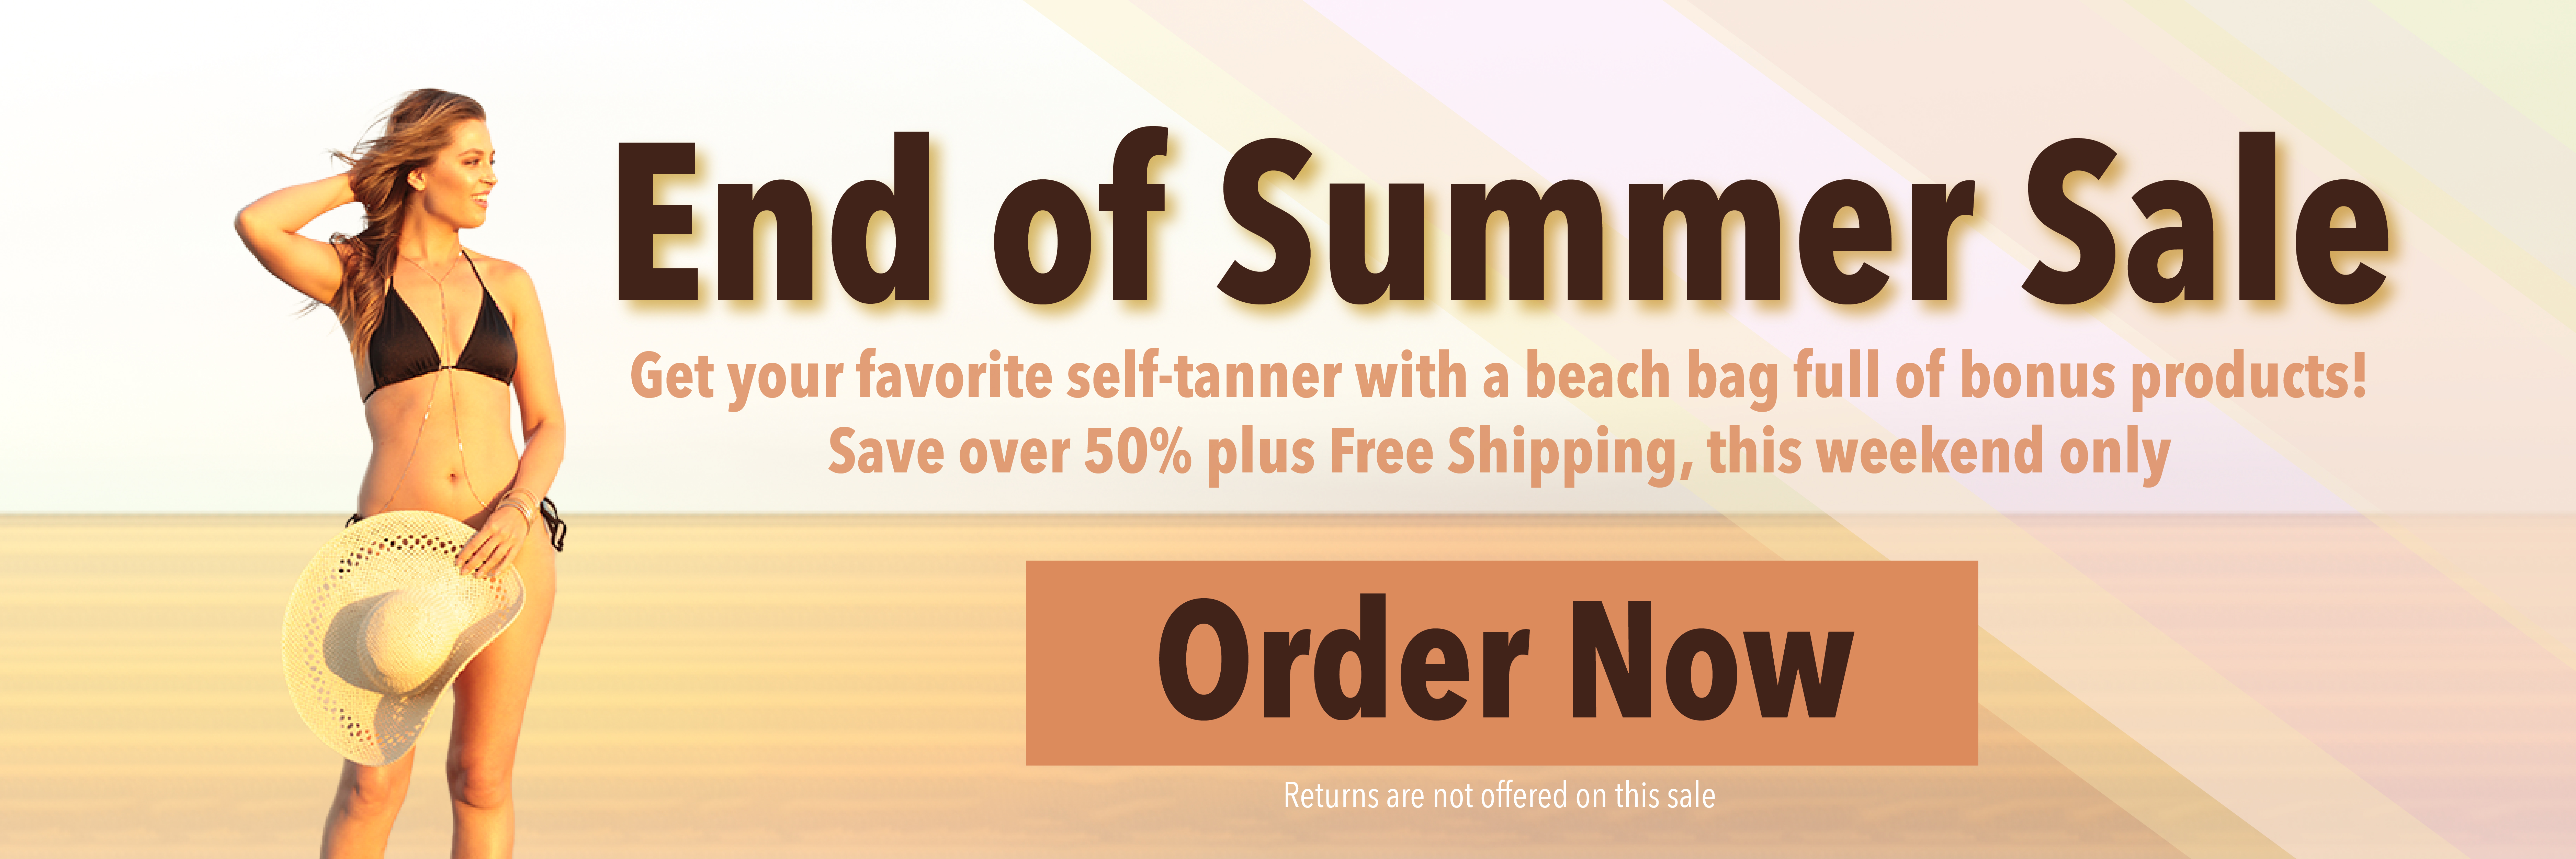 End of summer sale this weekend only